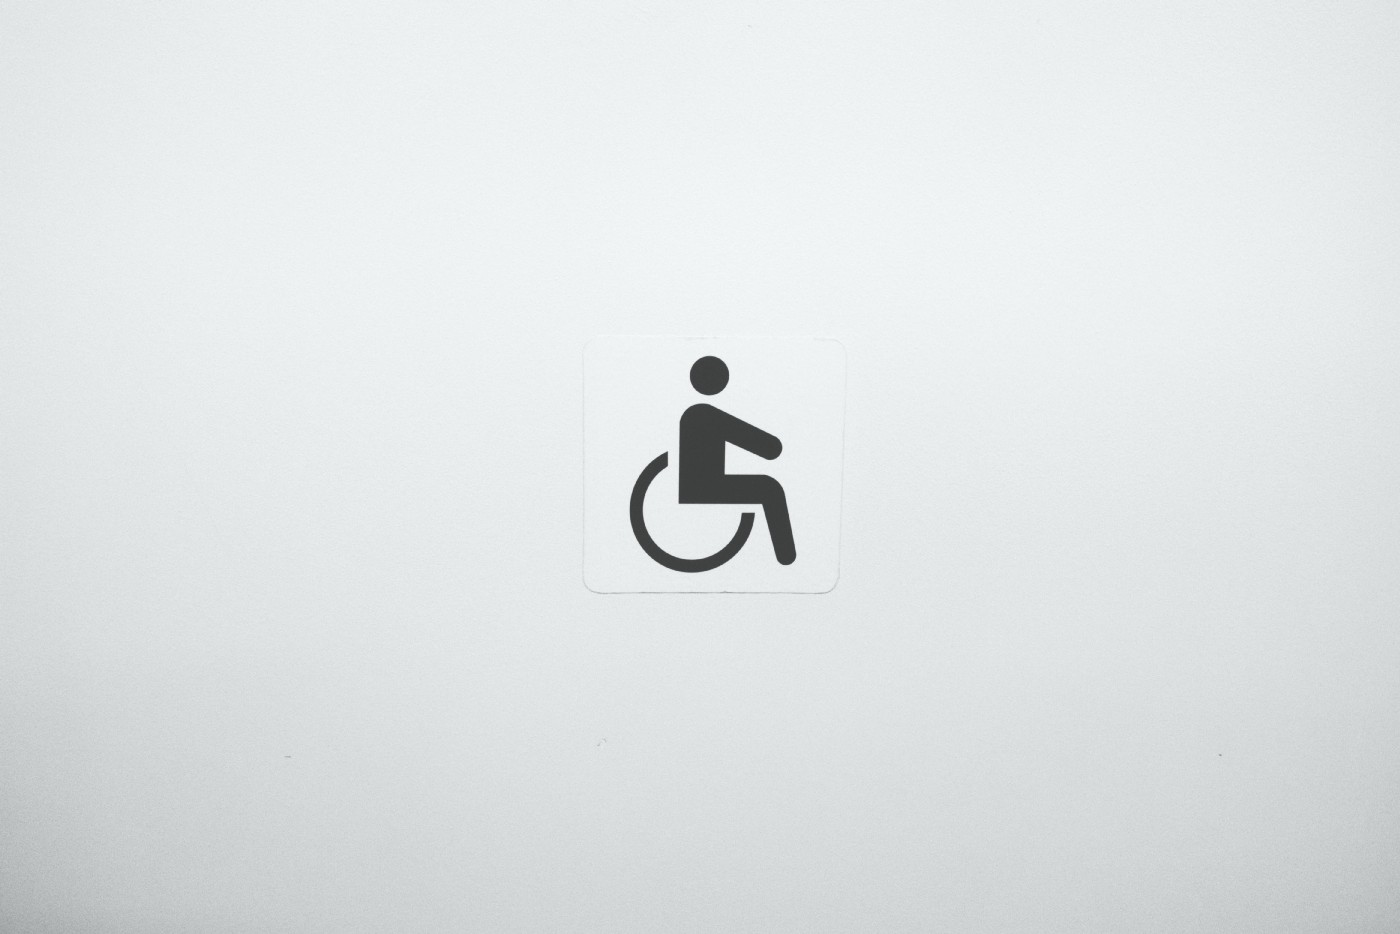 Well-known disability symbol (I.e. cartoon silhouette of human figure sitting in wheelchair)